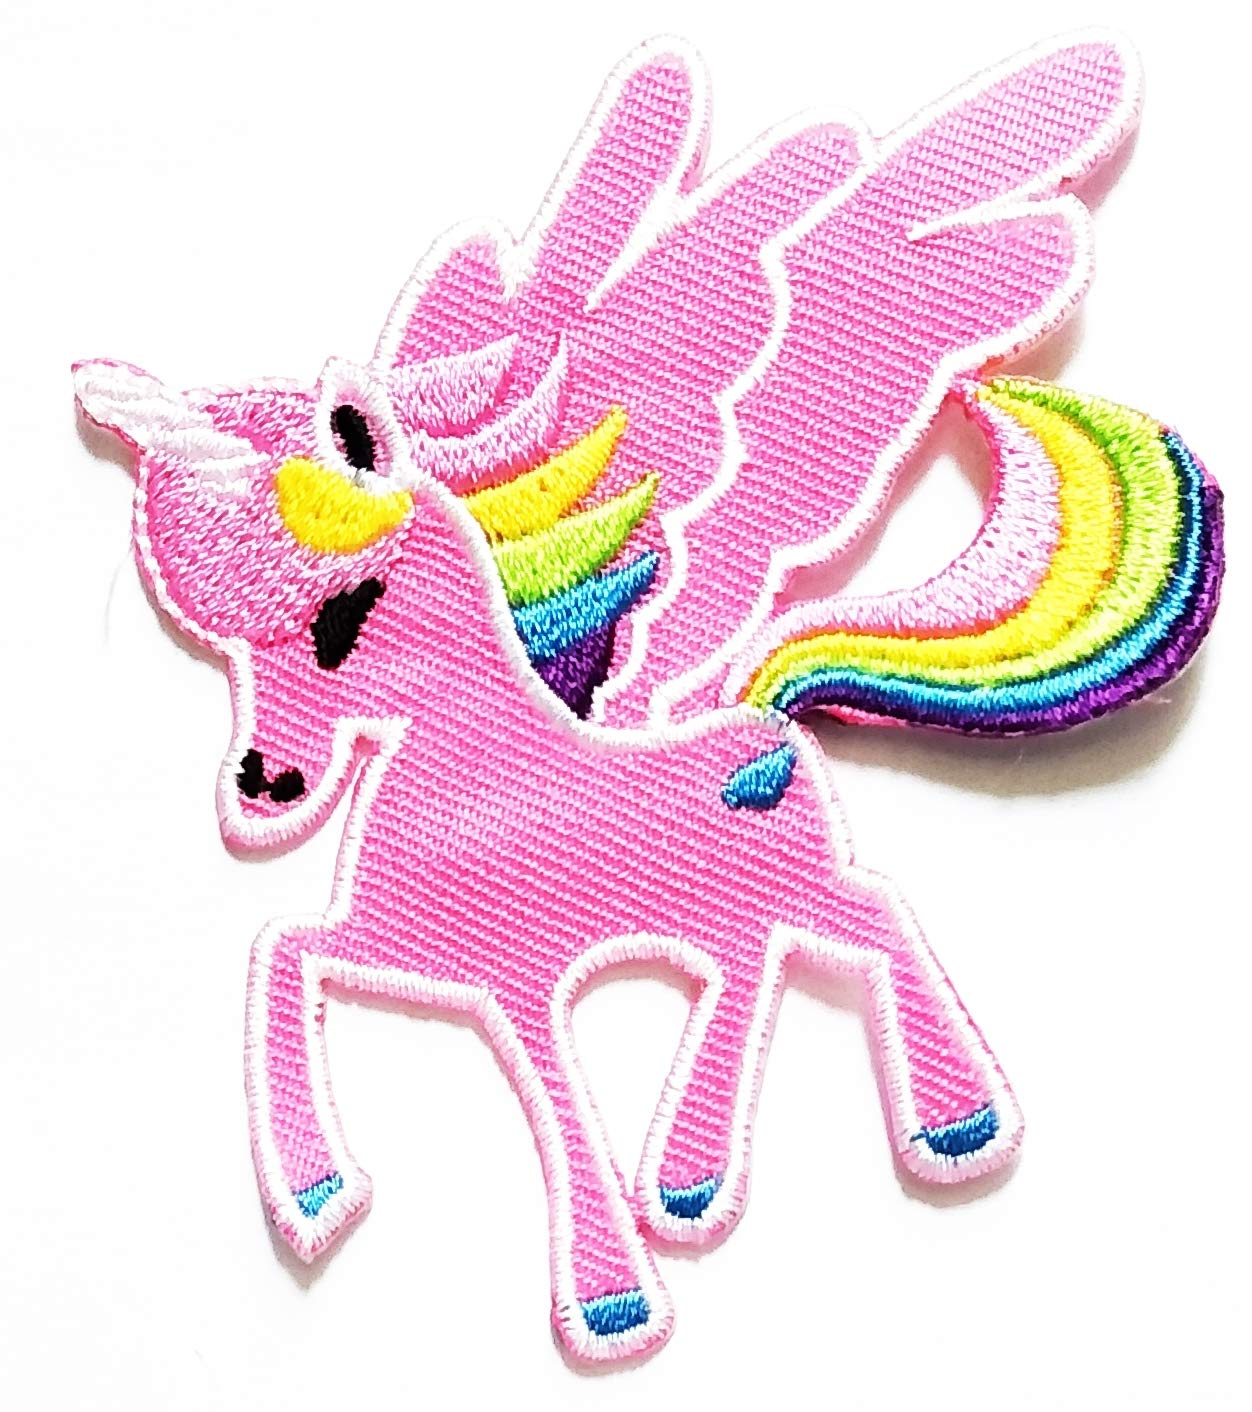 Nipitshop Patches Cute Fantasy Horse Unicorn Pink with Flying Wings Cartoon Kids Patch Embroidered Iron On Patch for Clothes Backpacks T-Shirt Jeans Skirt Vests Scarf Hat Bag